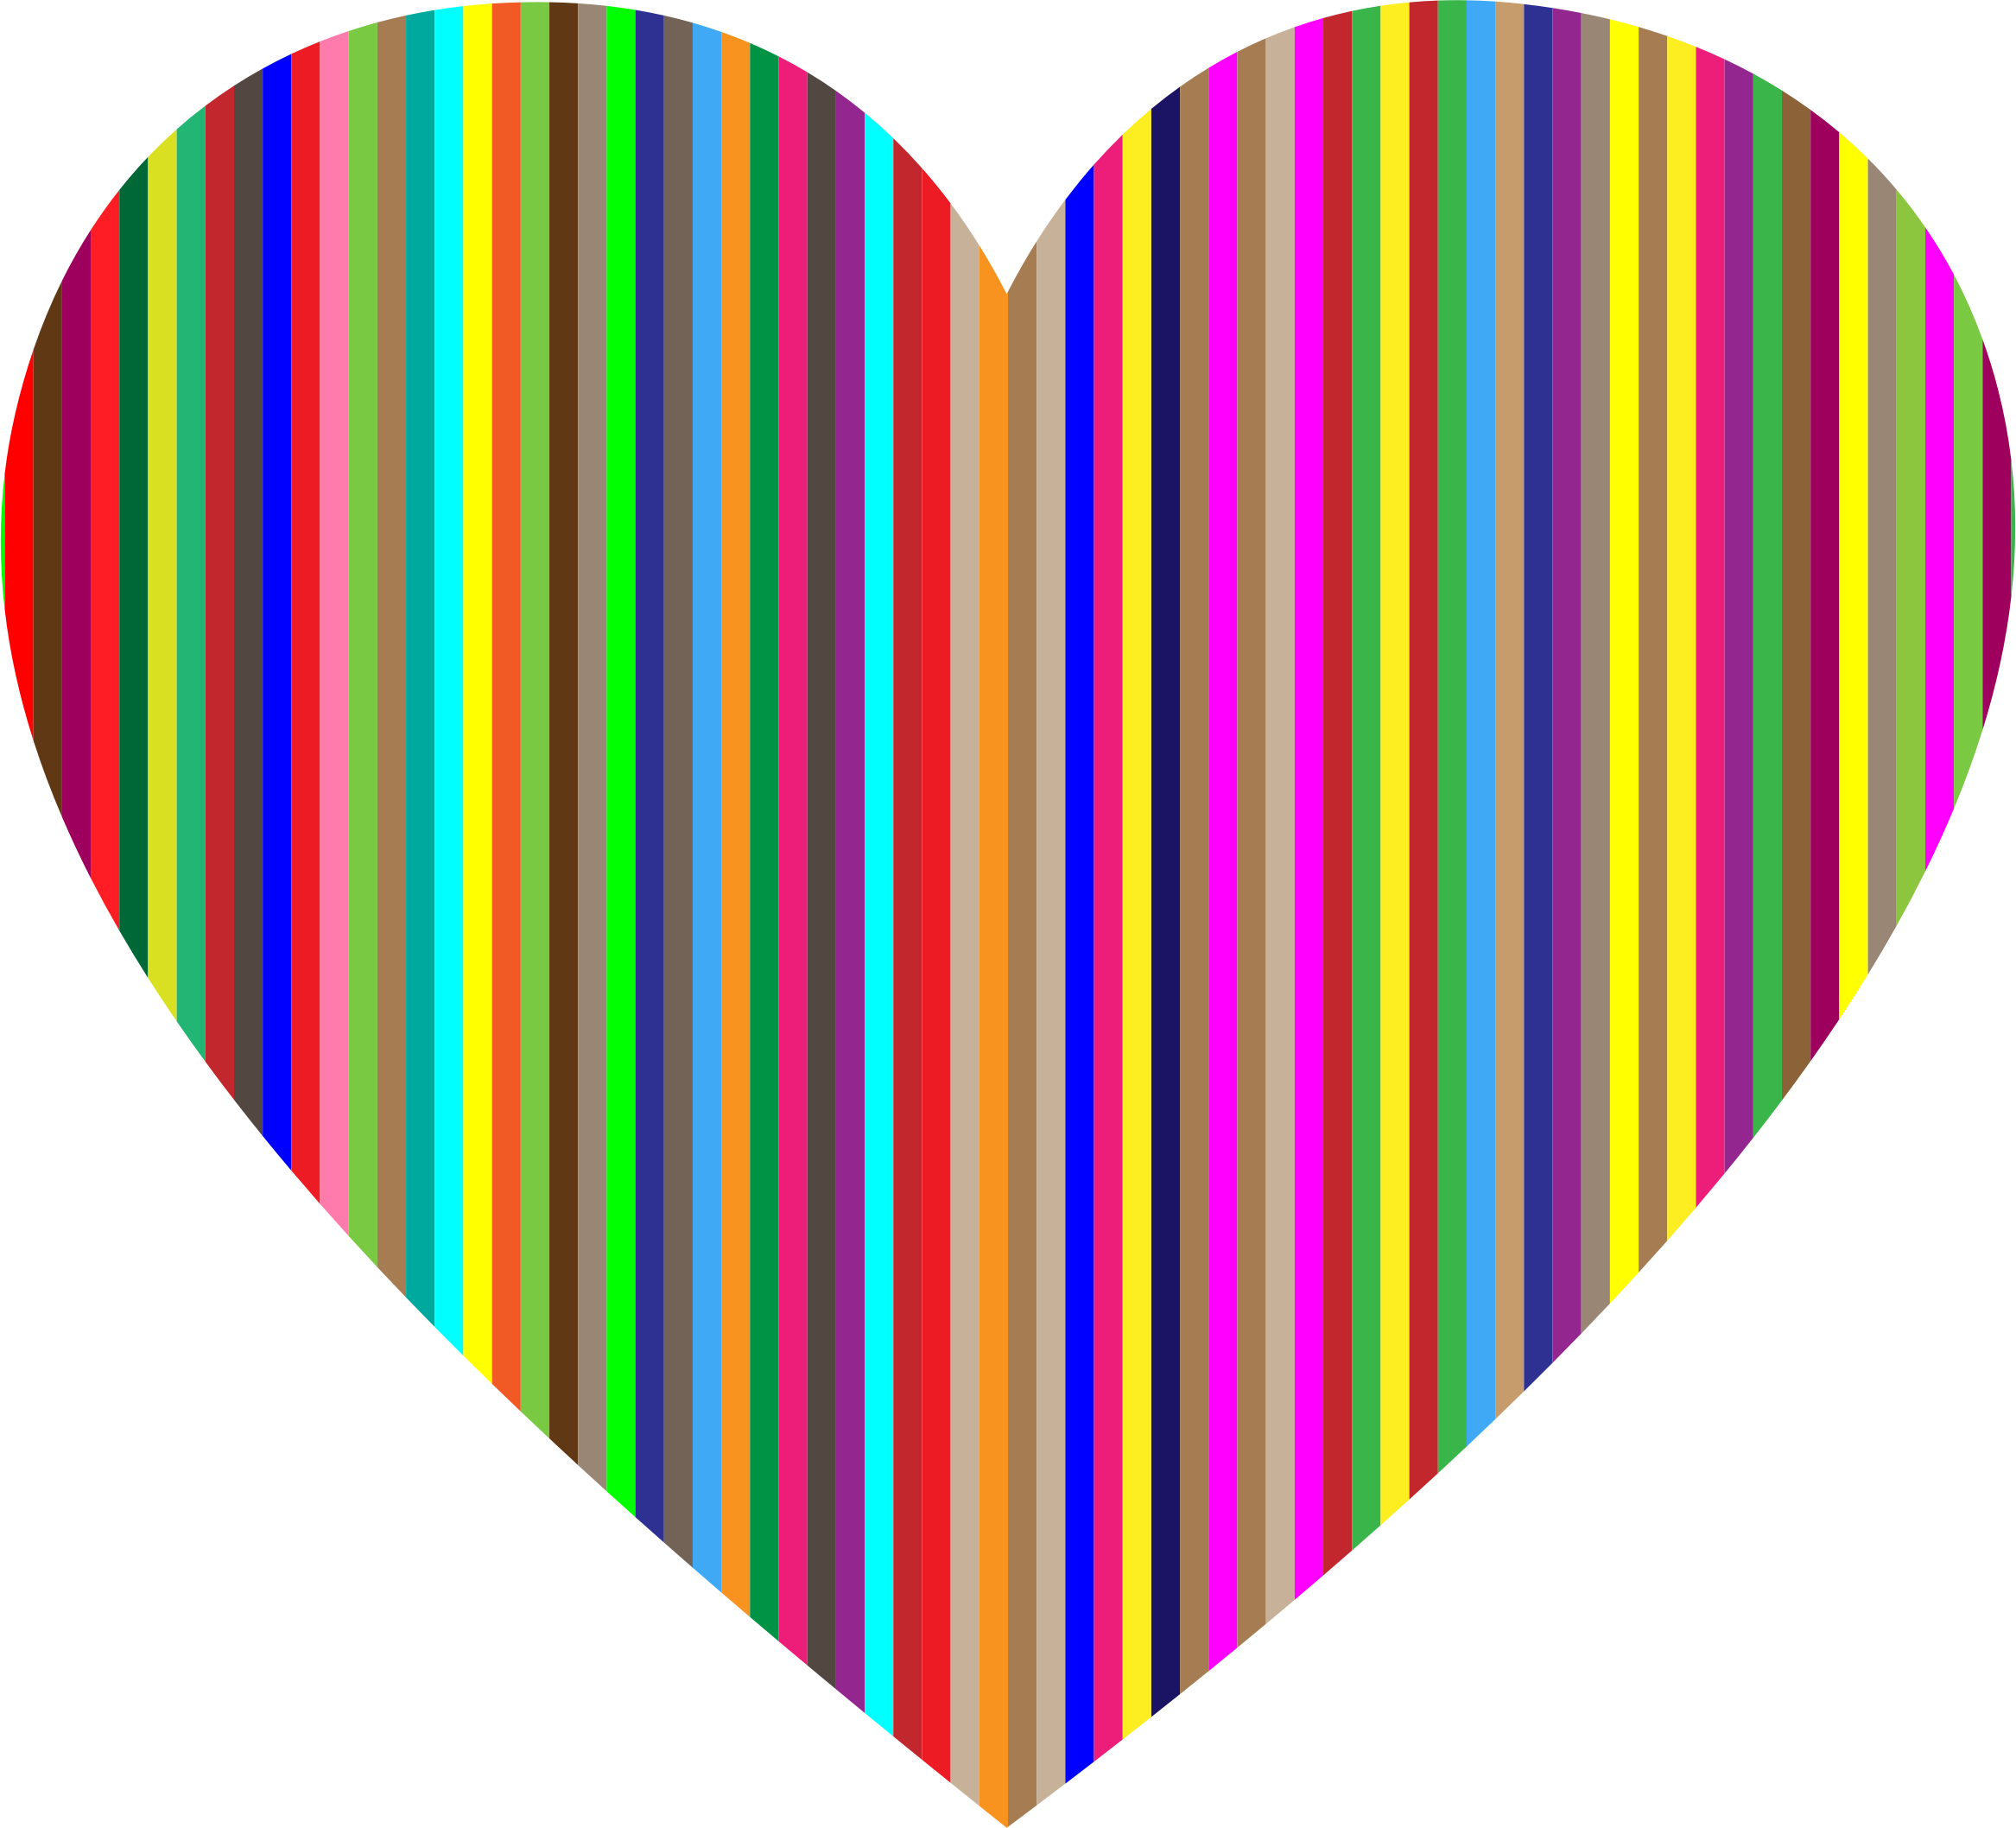 Colorful vertical heart icons. Number 1 clipart striped